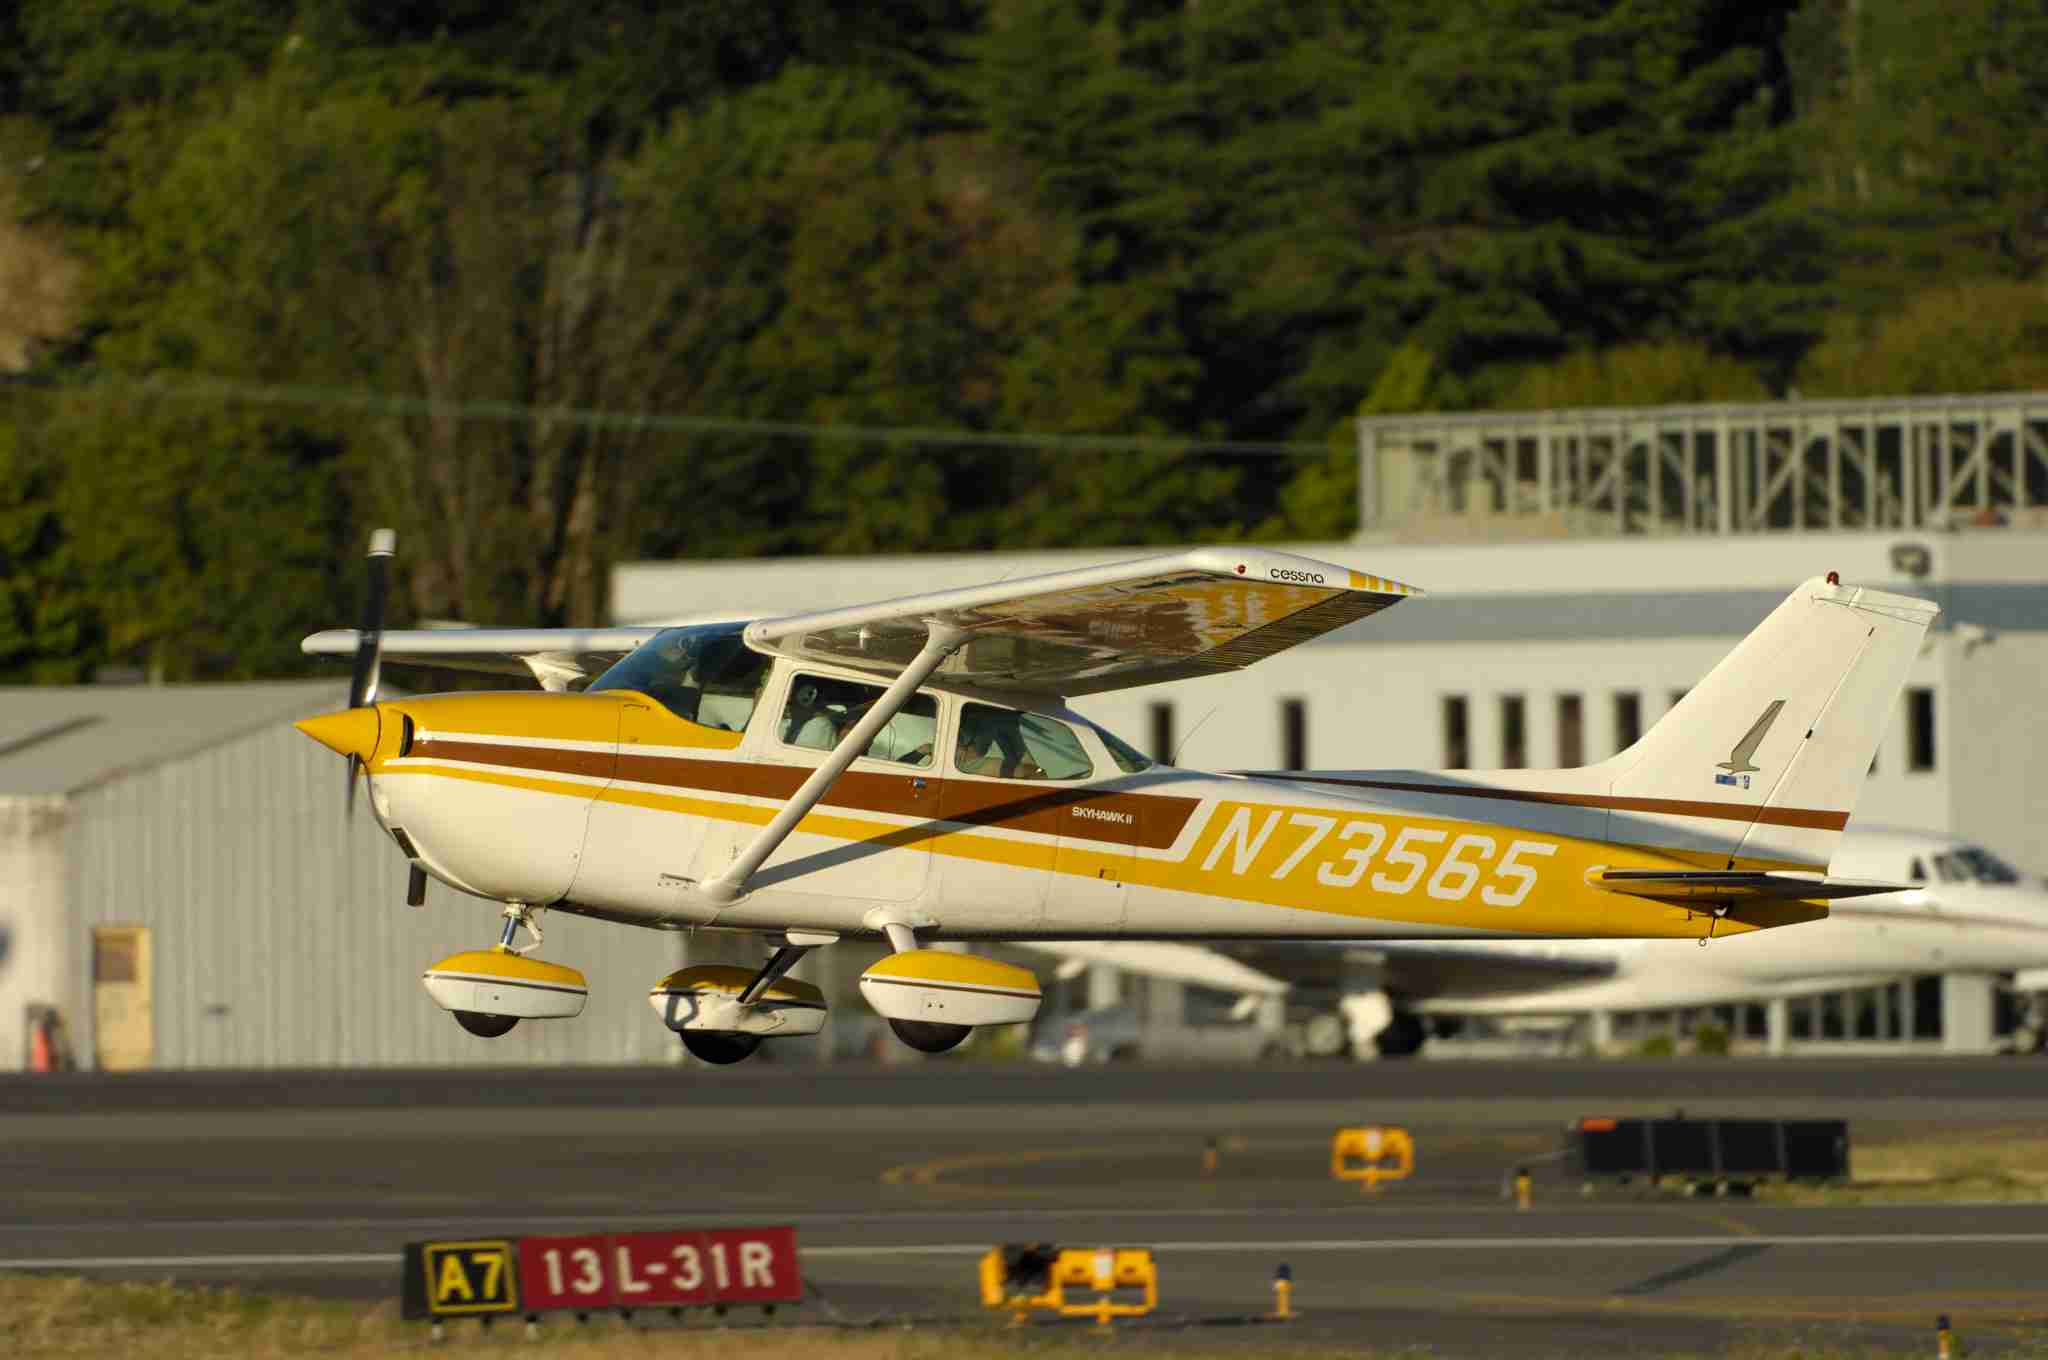 A Cessna 172M Skyhawk, an airplane commonly used at US flying schools, taking off. (Photo by: aviation-images.com/UIG via Getty Images)